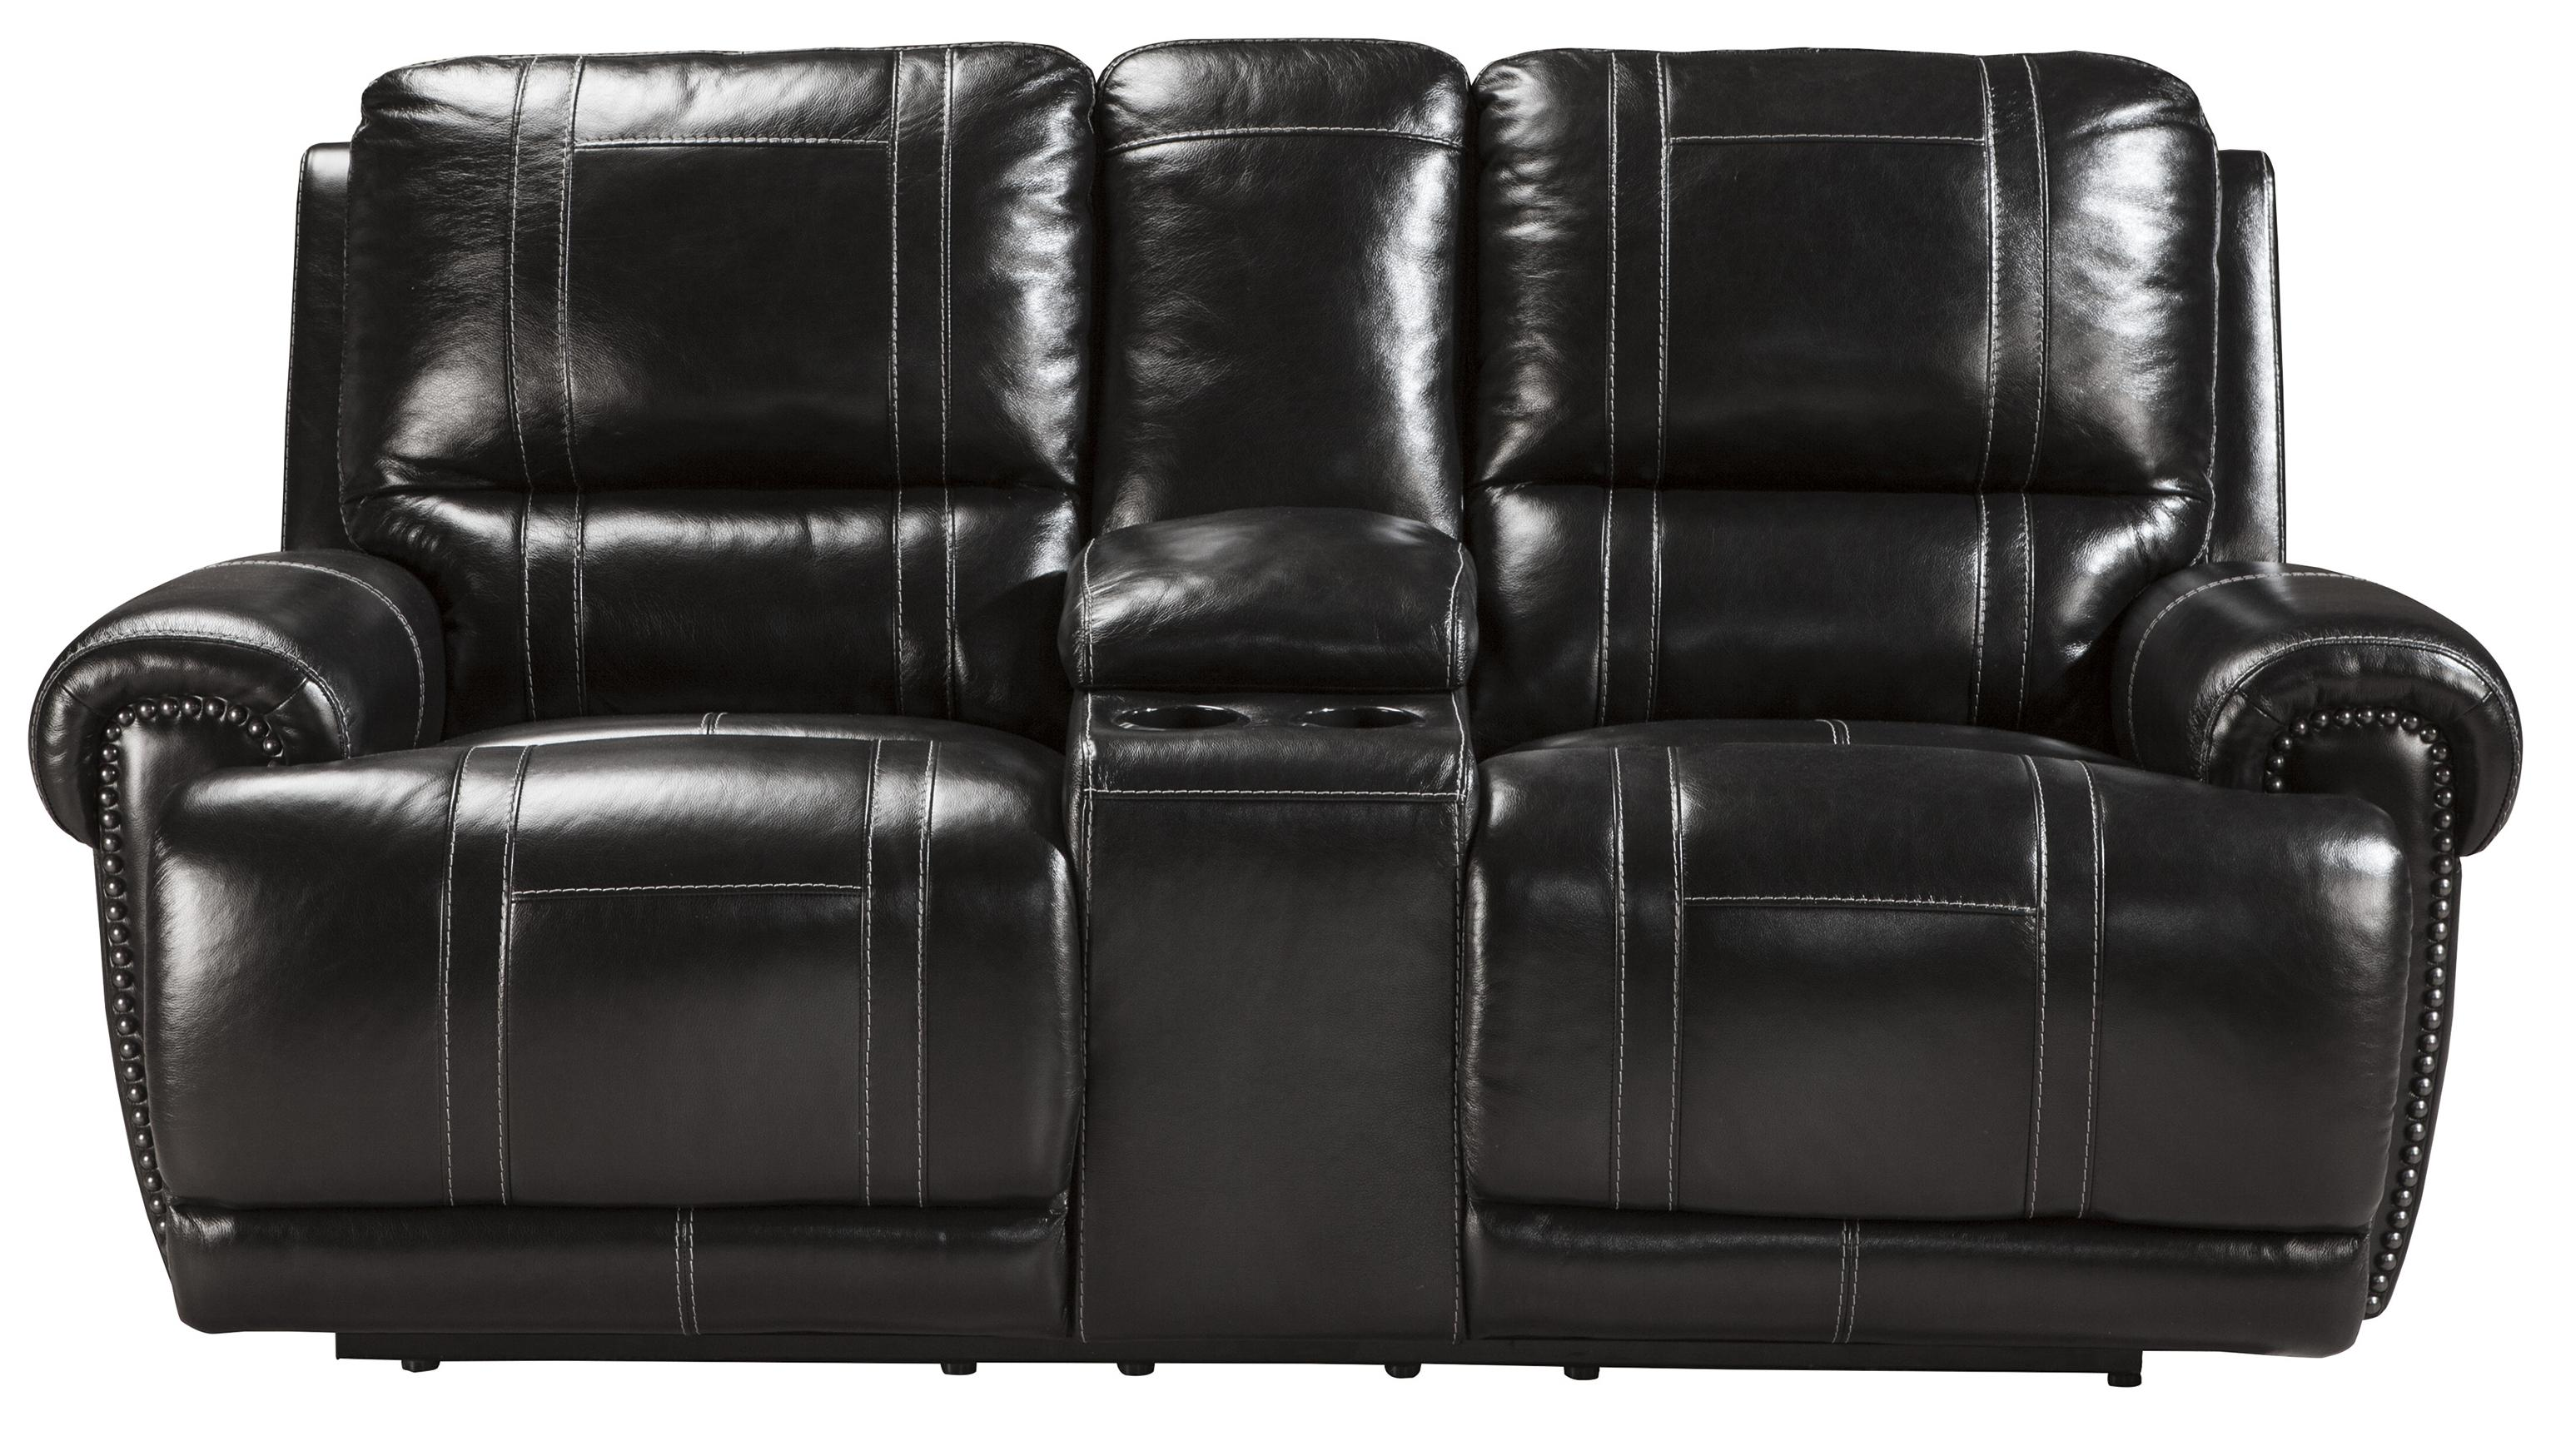 Signature Design by Ashley Paron - Antique Double Reclining Loveseat w/ Console - Item Number: U7590194